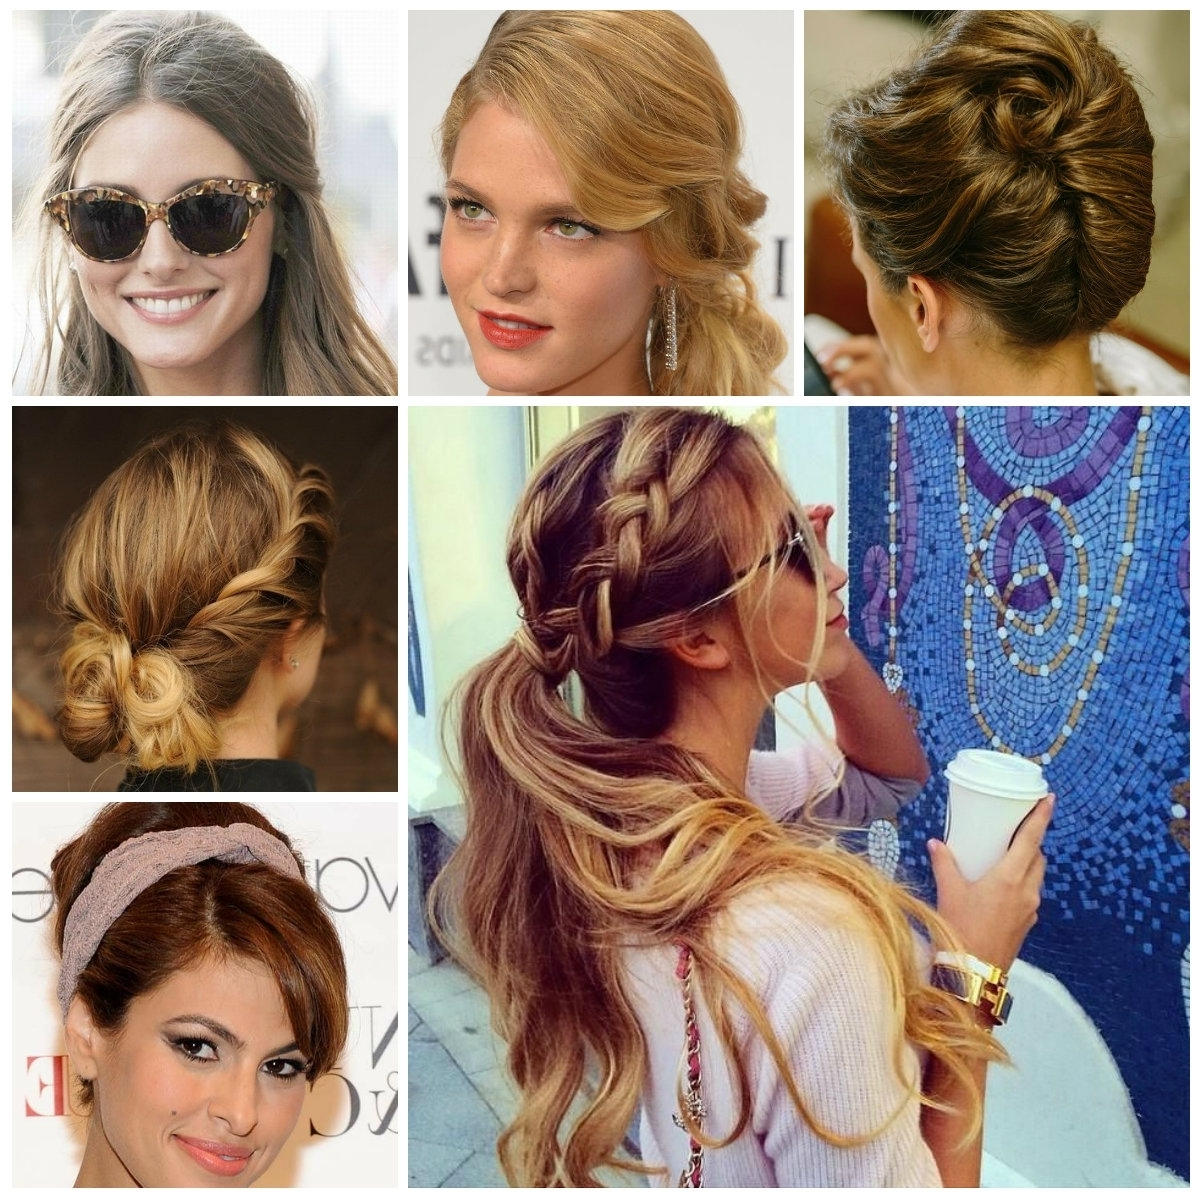 Easy Casual Updo Hairstyles For Long Hair – Women Medium Haircut With Regard To Easy Updo Hairstyles (Gallery 13 of 15)